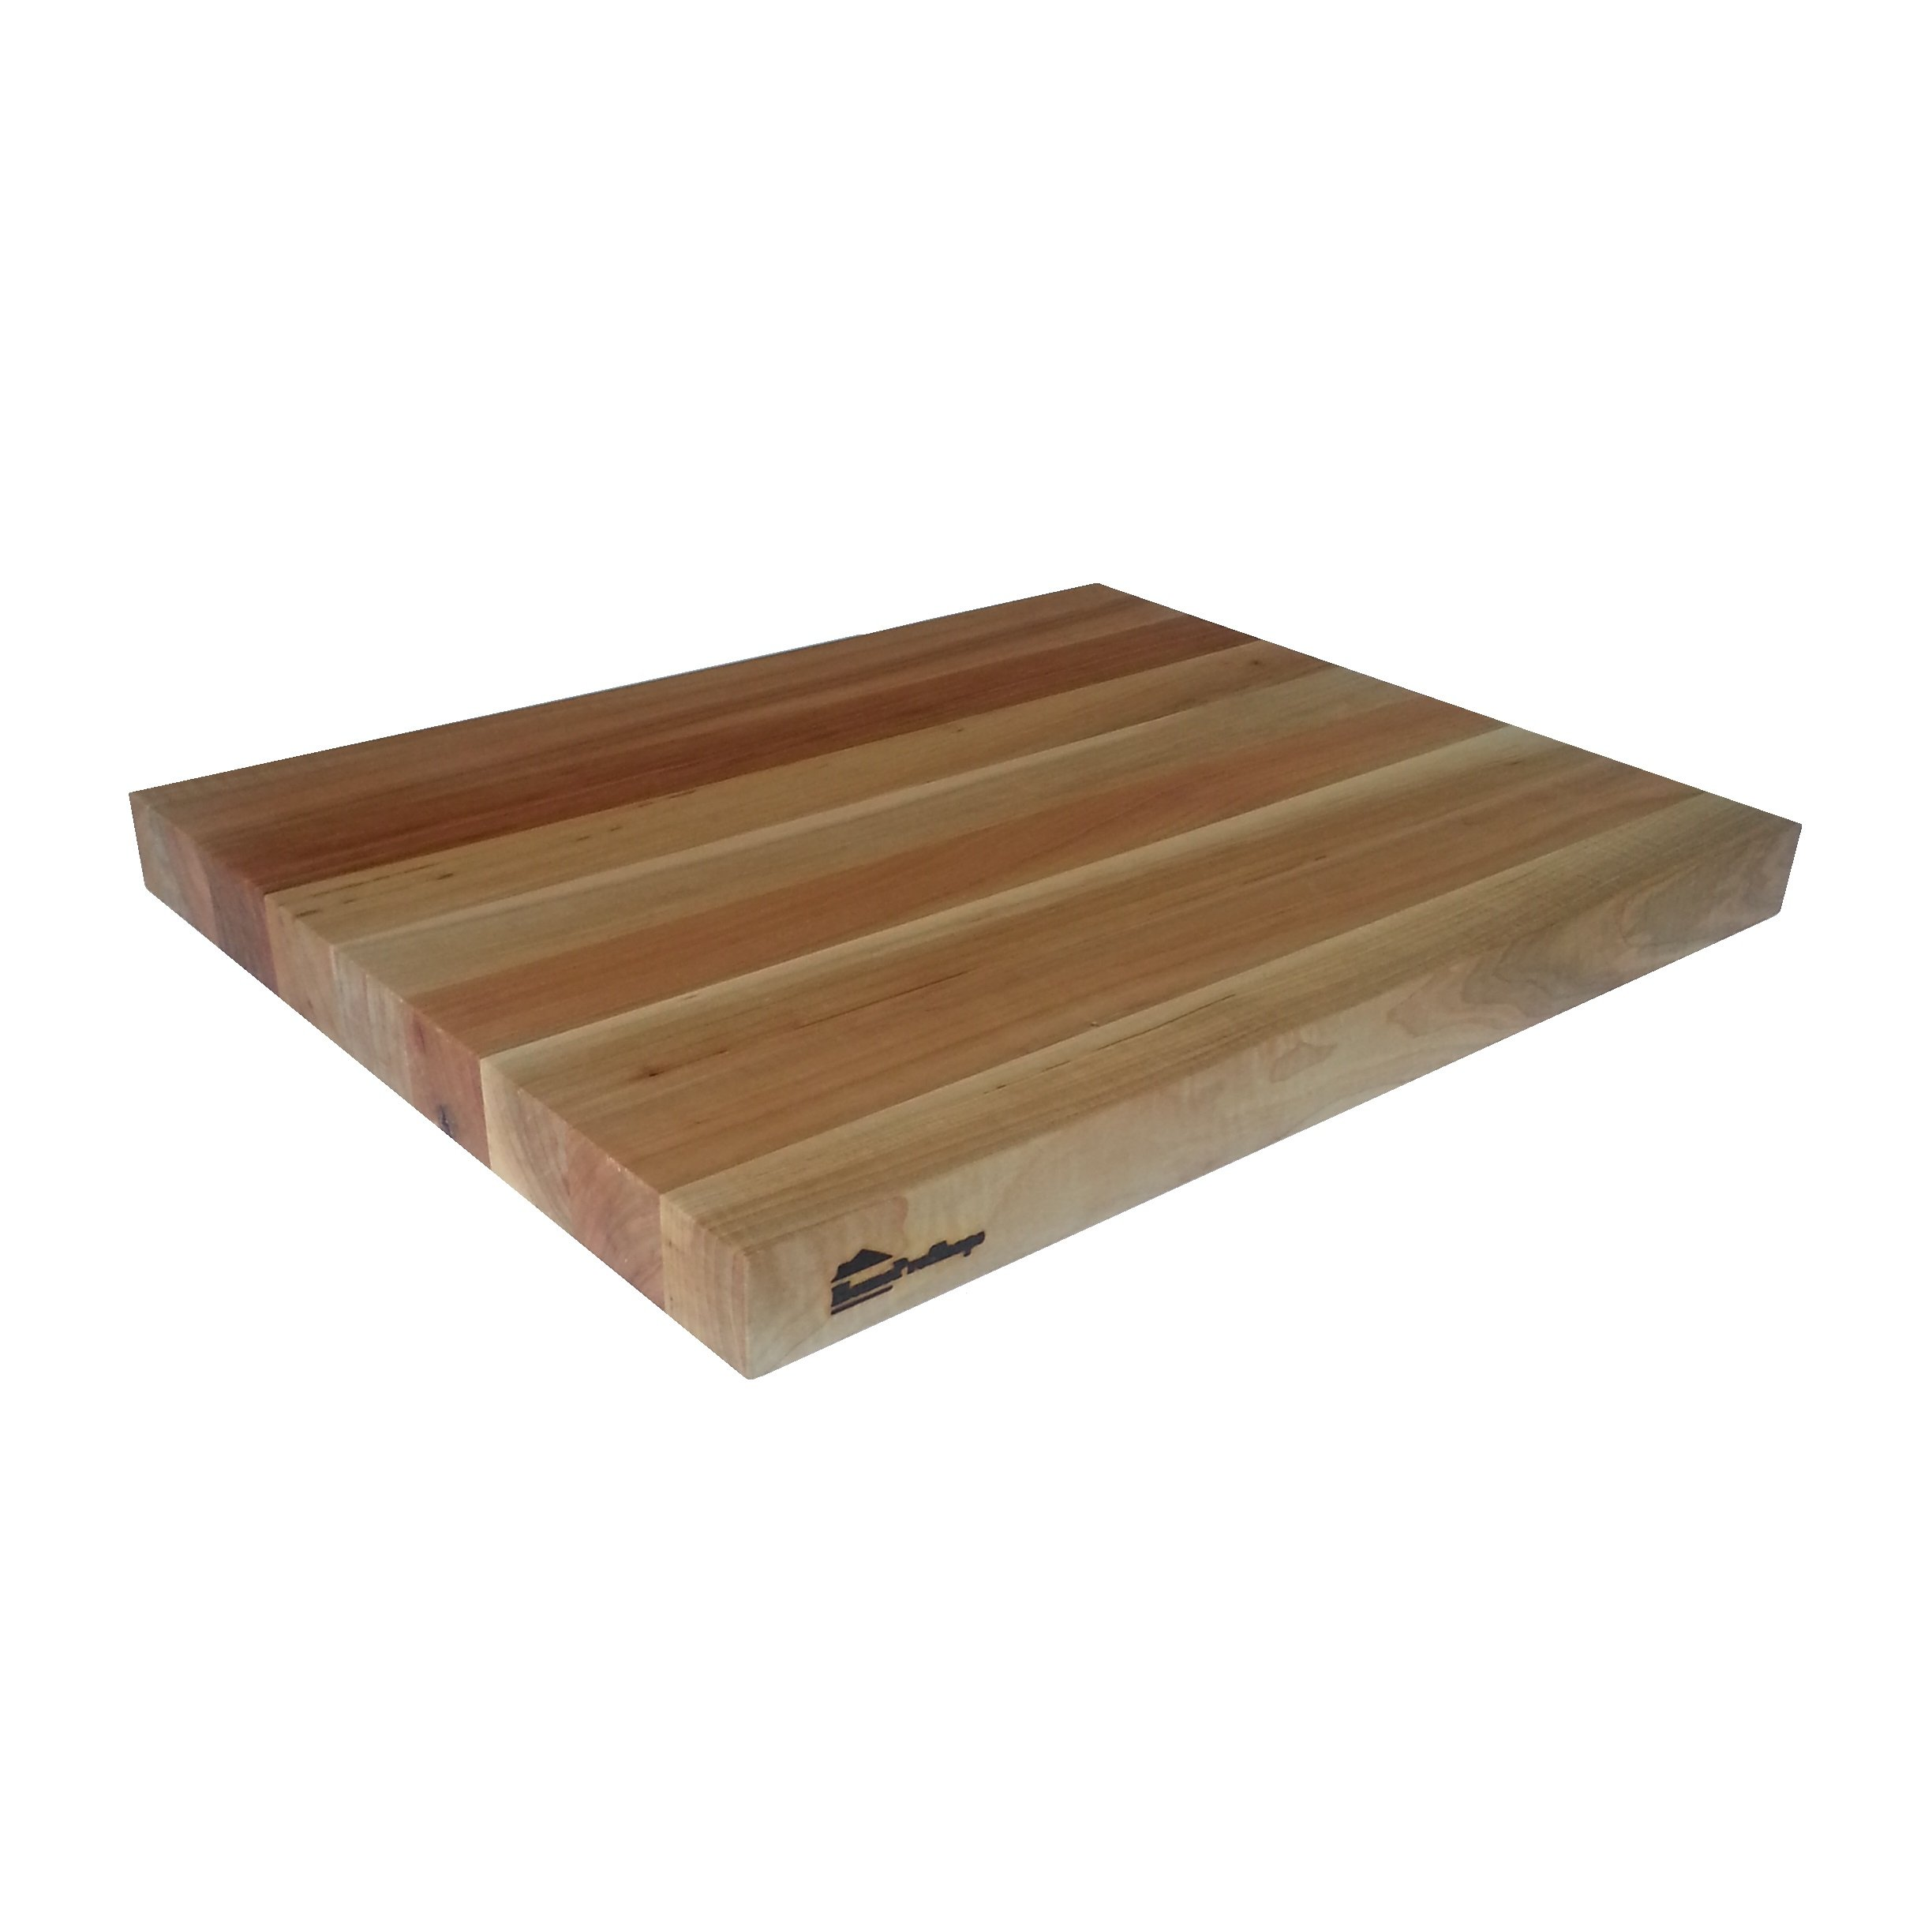 Wood Shelf Platform ONLY - 1-1/2'' x 15'' x 19 - For Revashelf RAS-ML-HDCR Heavy Duty Mixer Lift - Maple Butcher Block - Trimmable